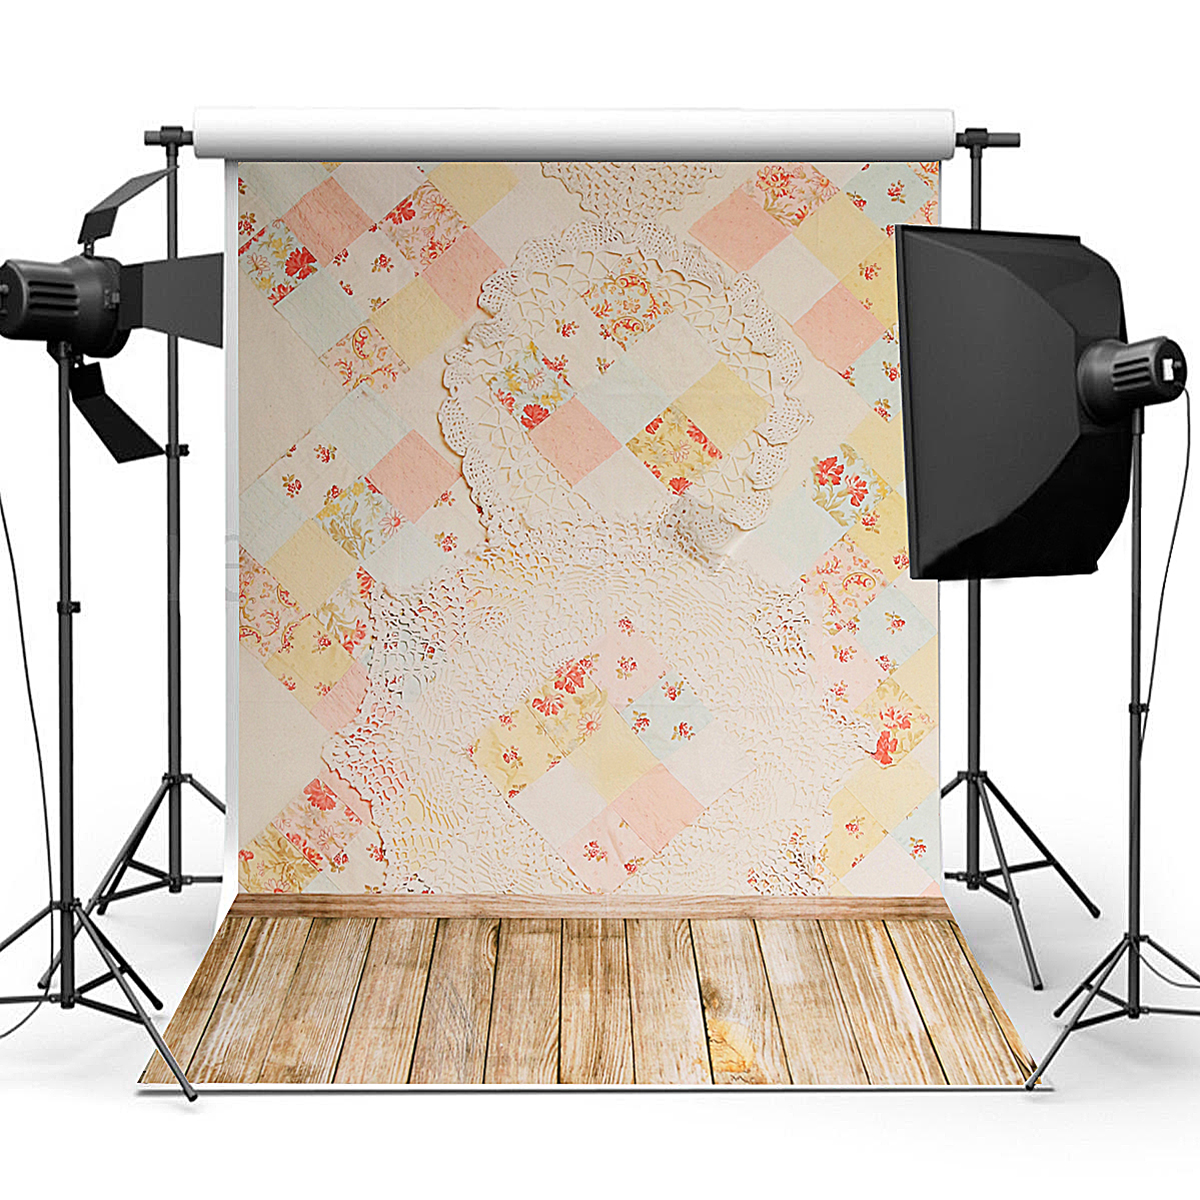 90x150cm Photography Vinyl Background Blanket Wall Plank Baby Theme